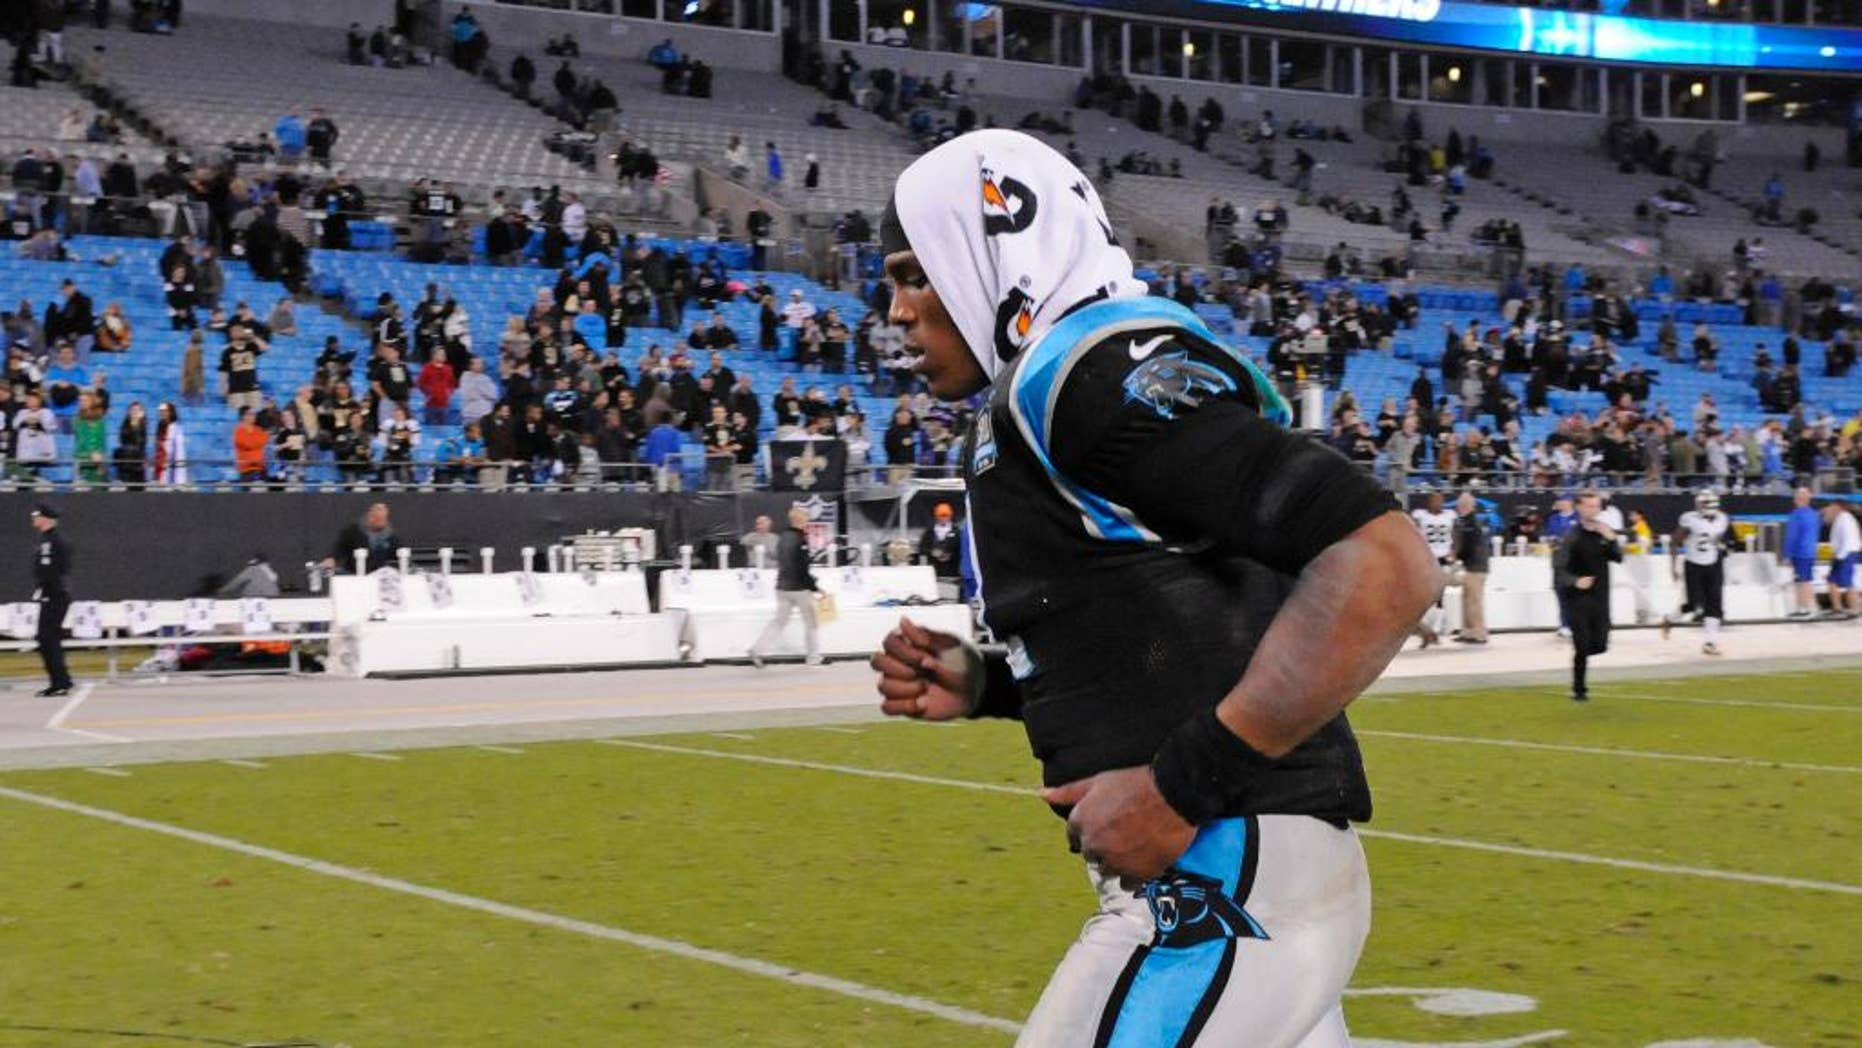 Carolina Panthers' Cam Newton (1) runs off the field after an NFL football game against the New Orleans Saints in Charlotte, N.C., Thursday, Oct. 30, 2014. The Saints won 28-10. (AP Photo/Mike McCarn)